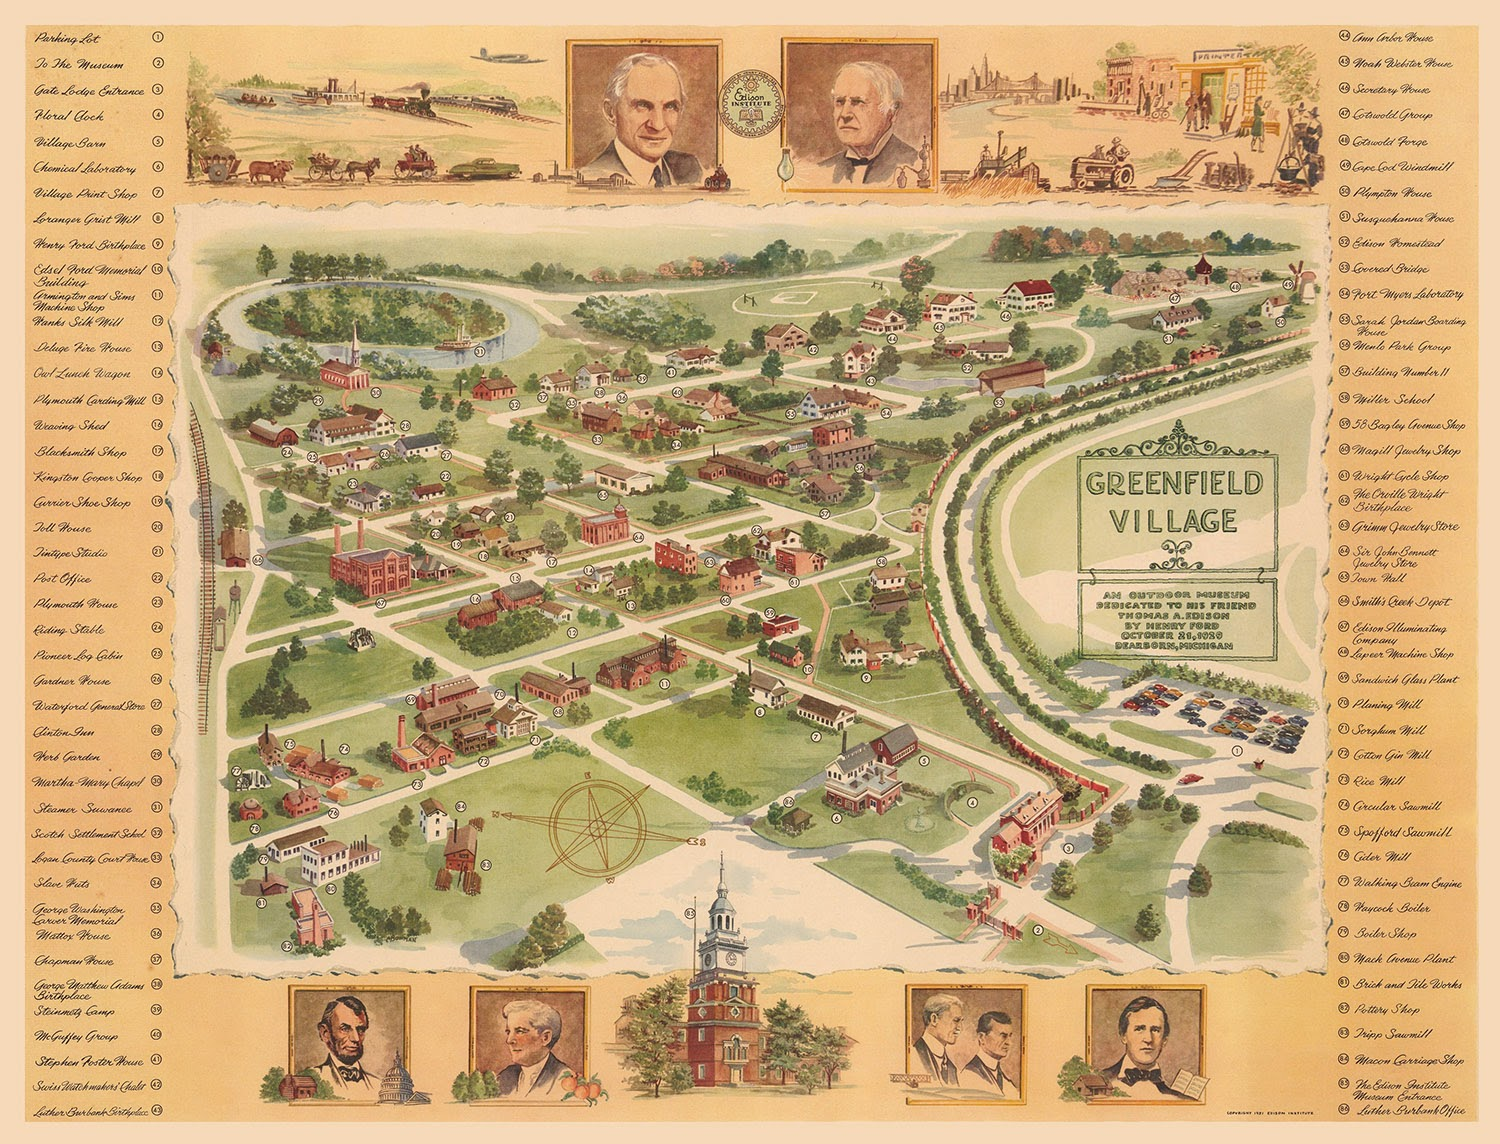 Greenfield Village Map GORILLAS DON'T BLOG: Greenfield Village, 1954 Greenfield Village Map